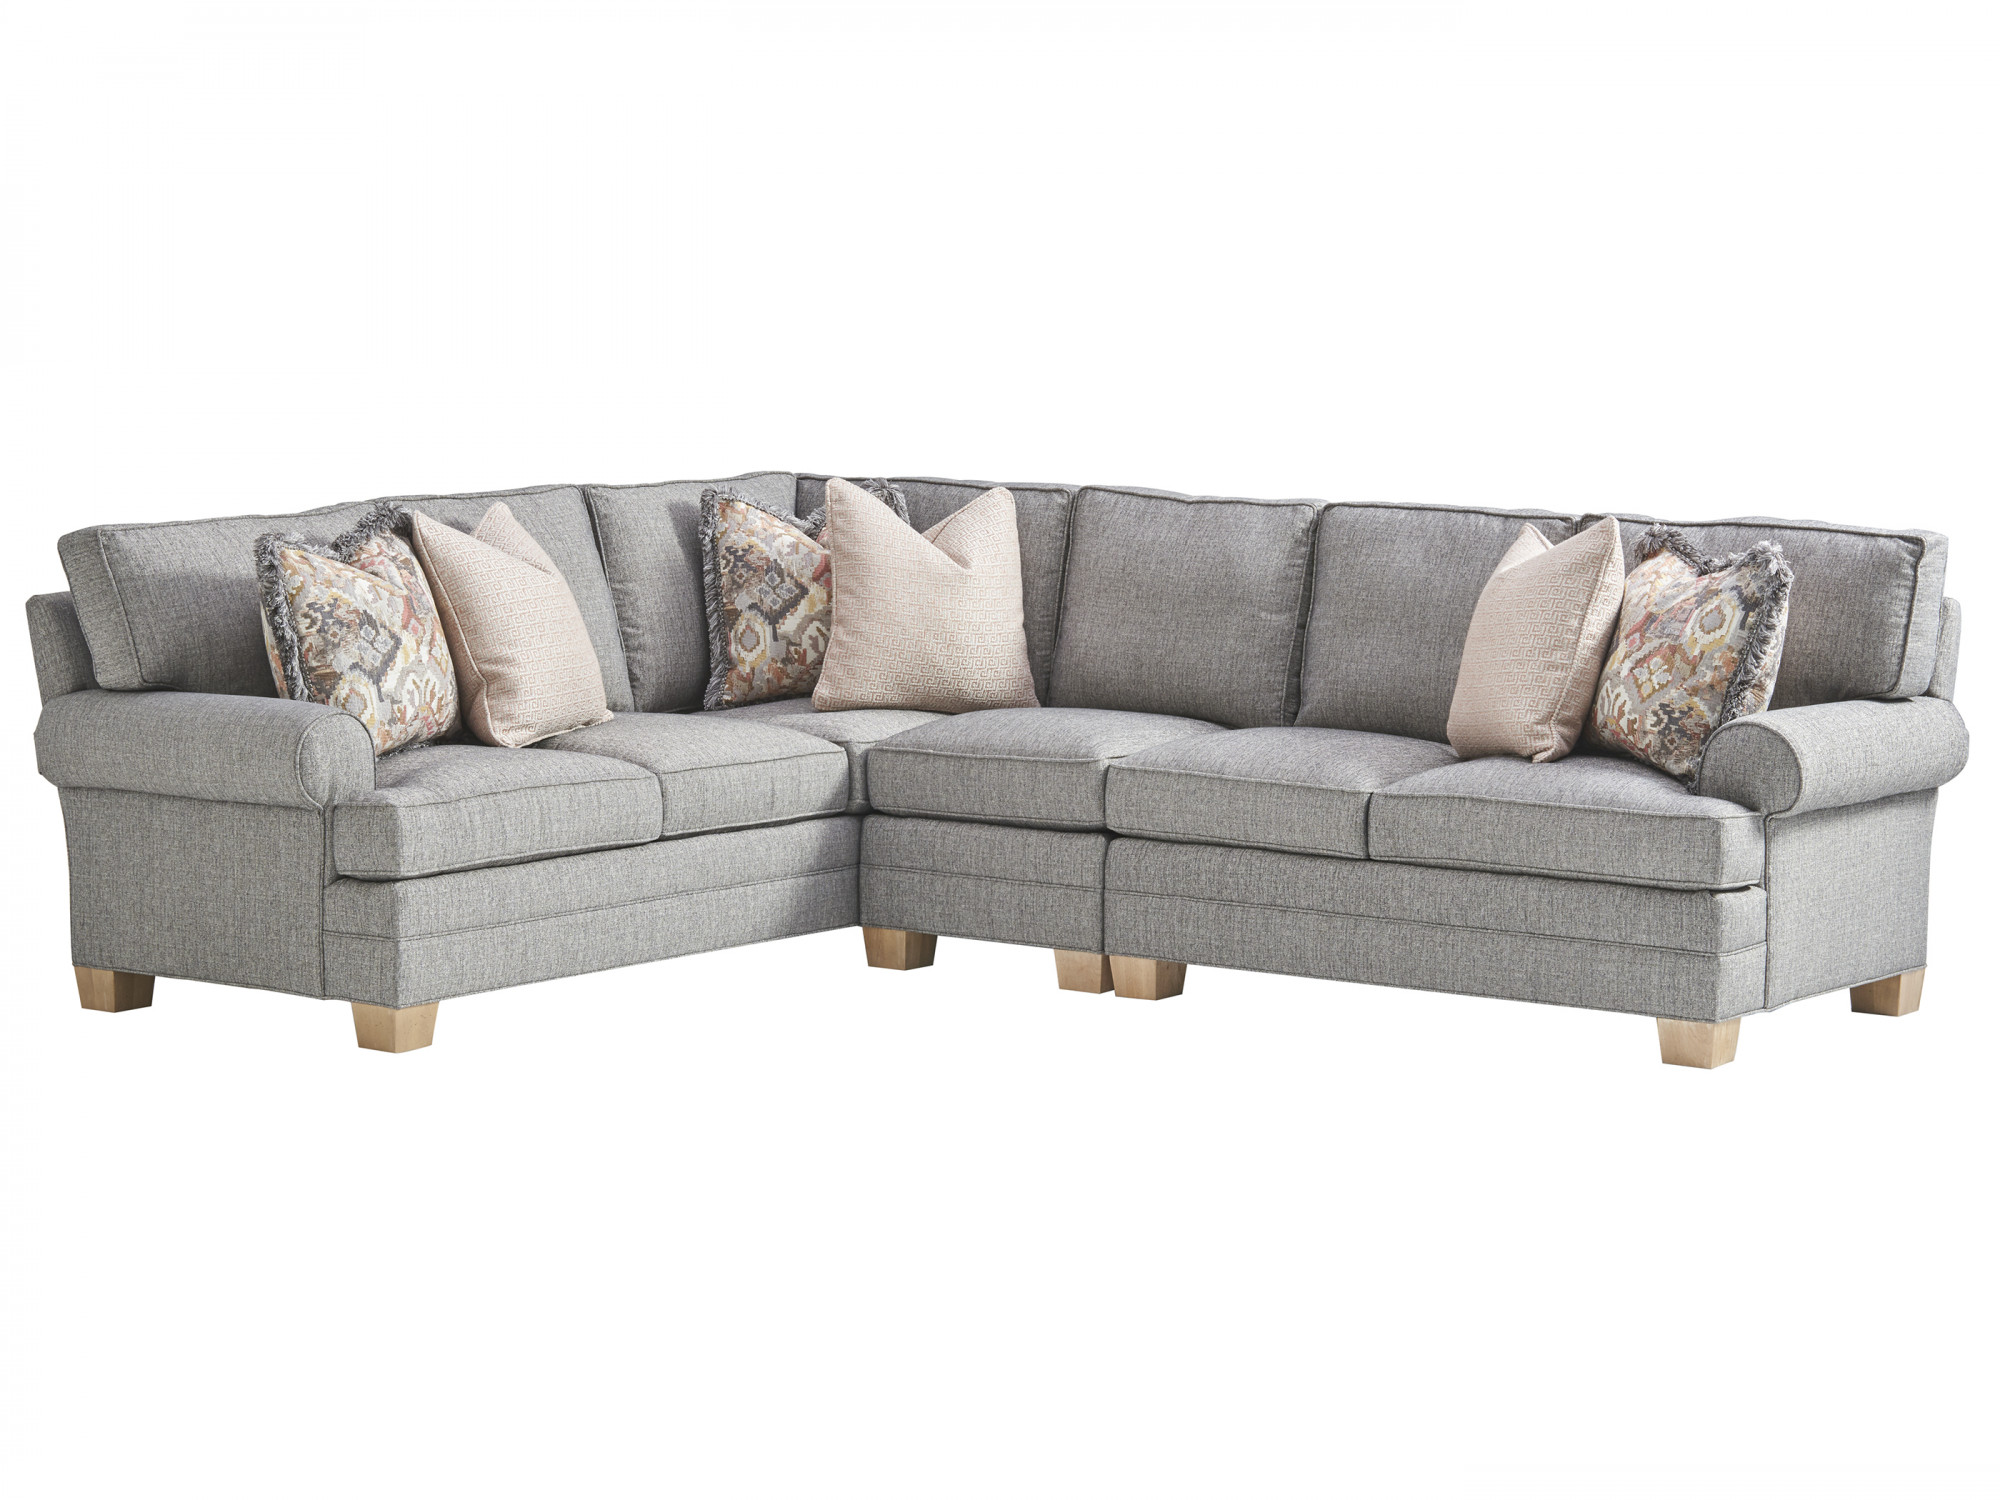 Peachy Tanner Sectional Lexington Home Brands Inzonedesignstudio Interior Chair Design Inzonedesignstudiocom